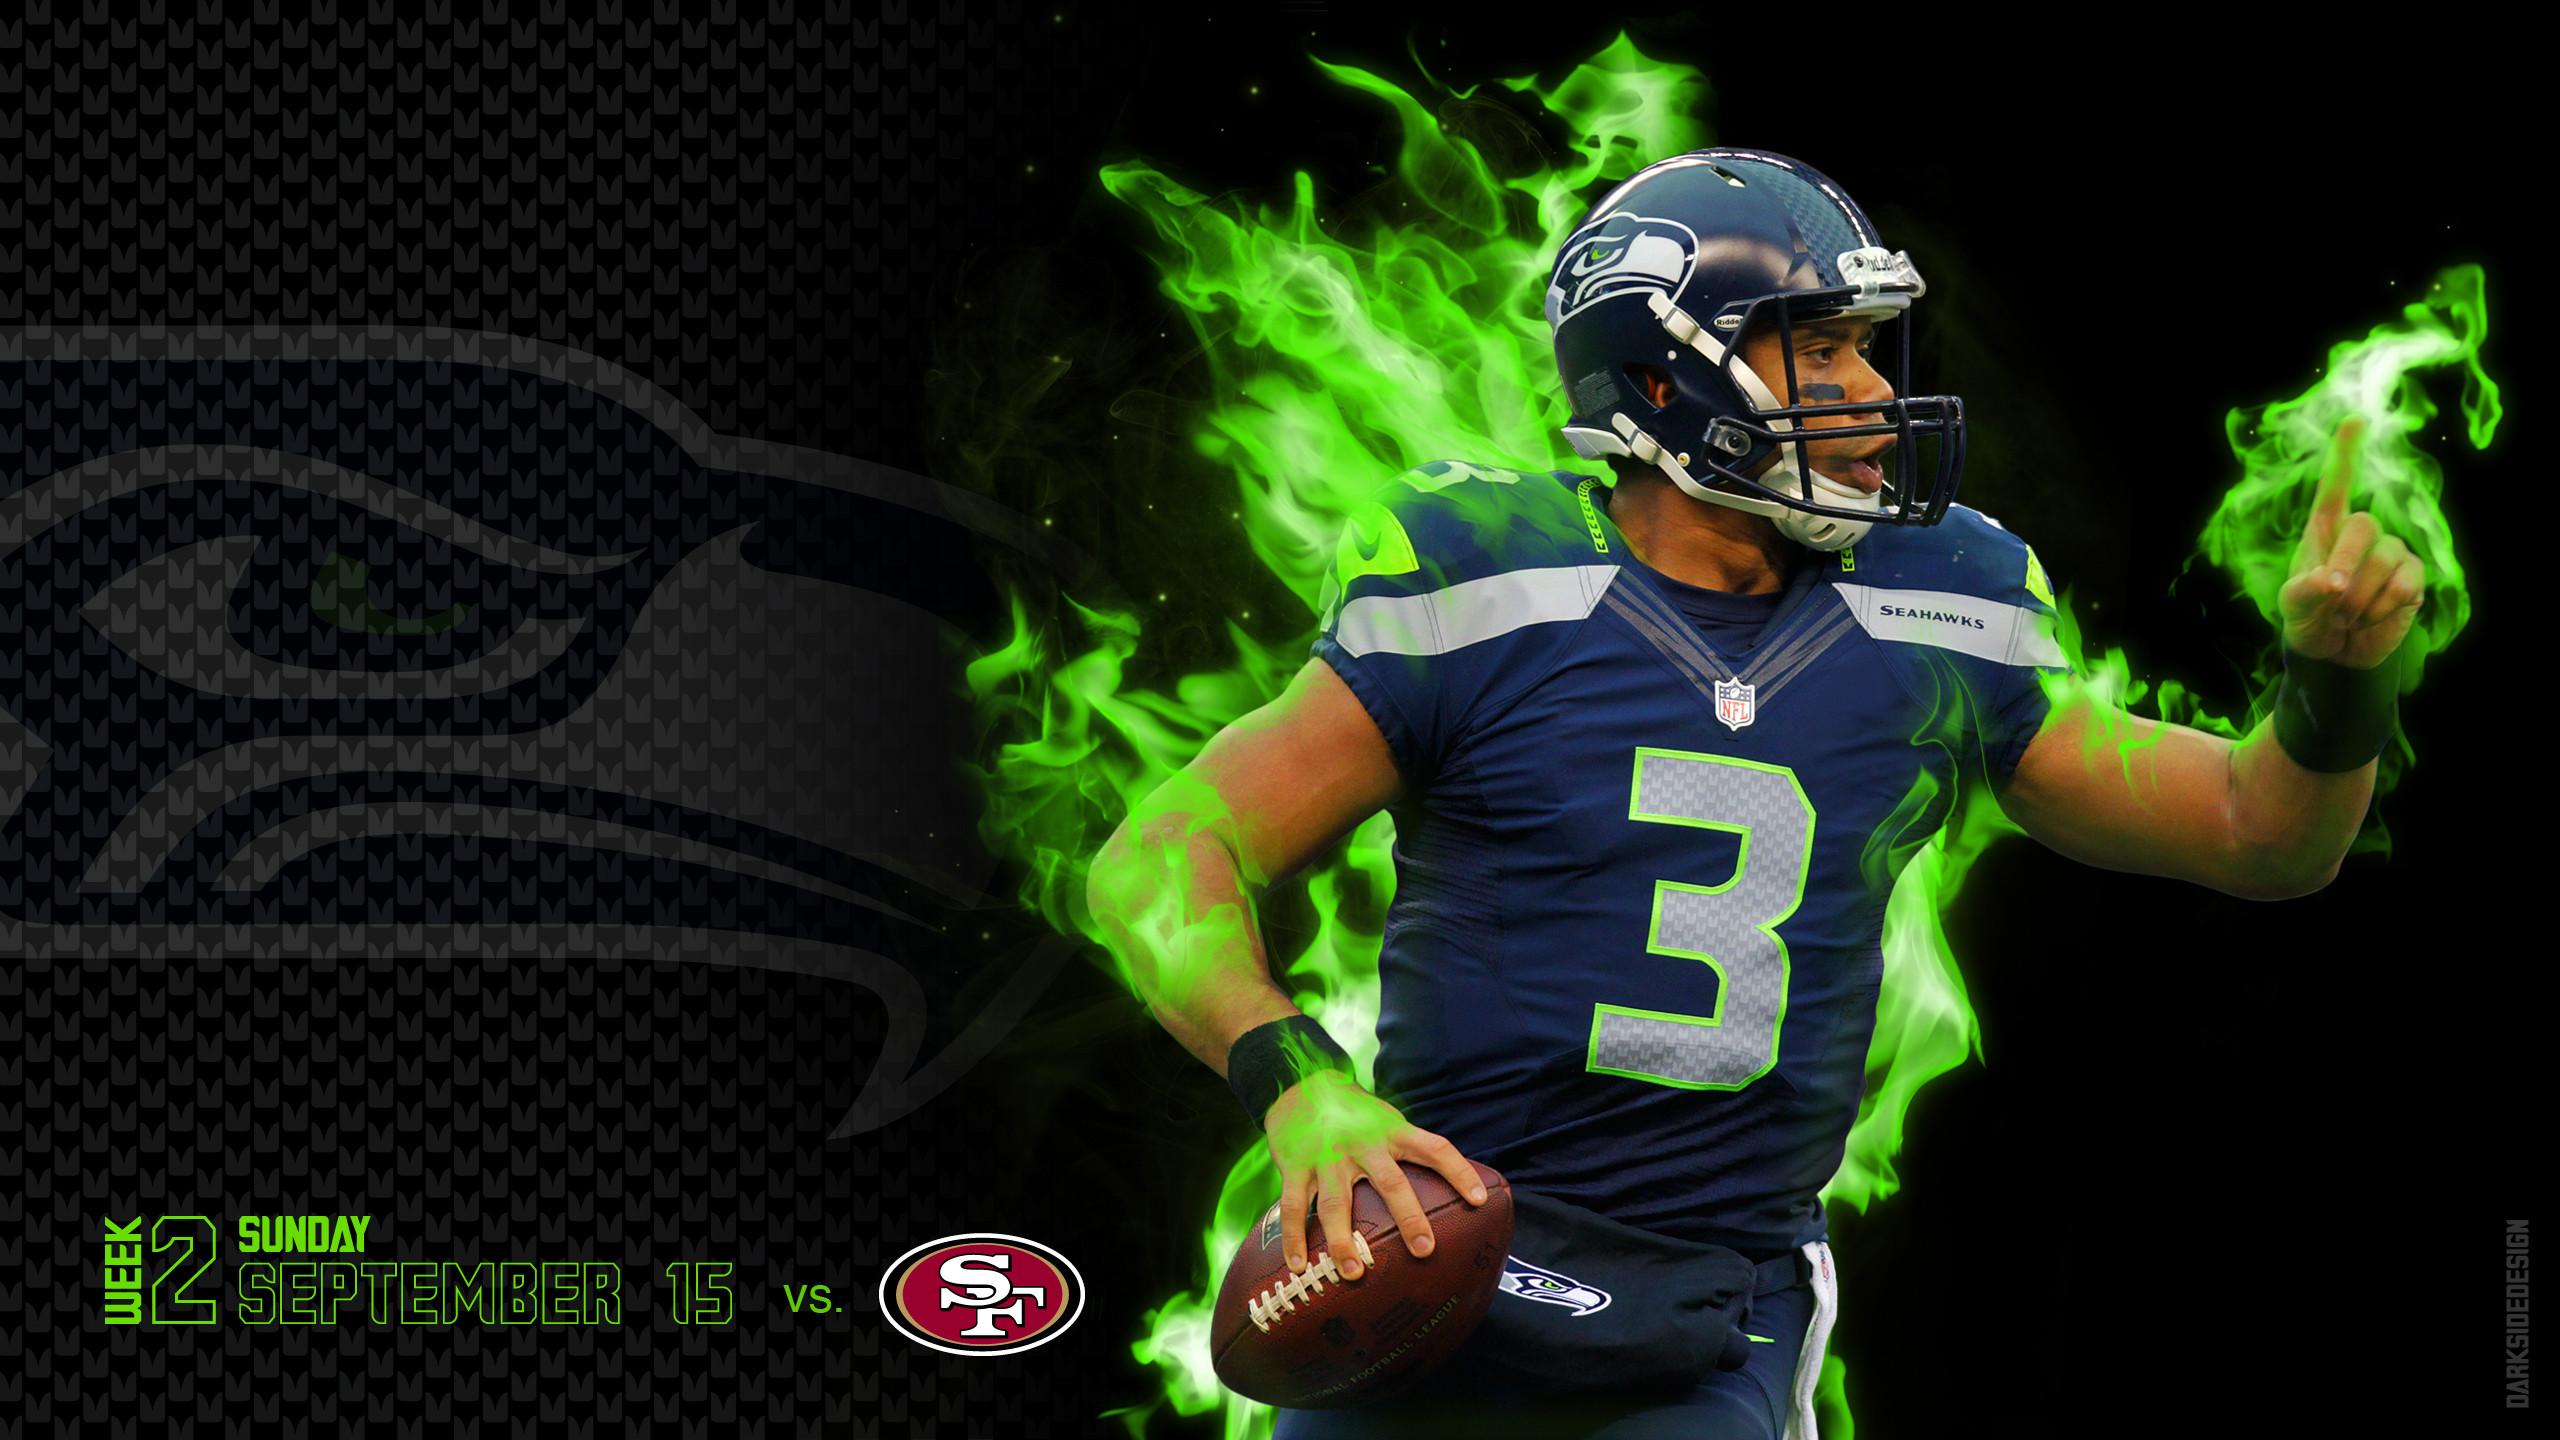 Seattle seahawk background desktop for American cuisine movie download